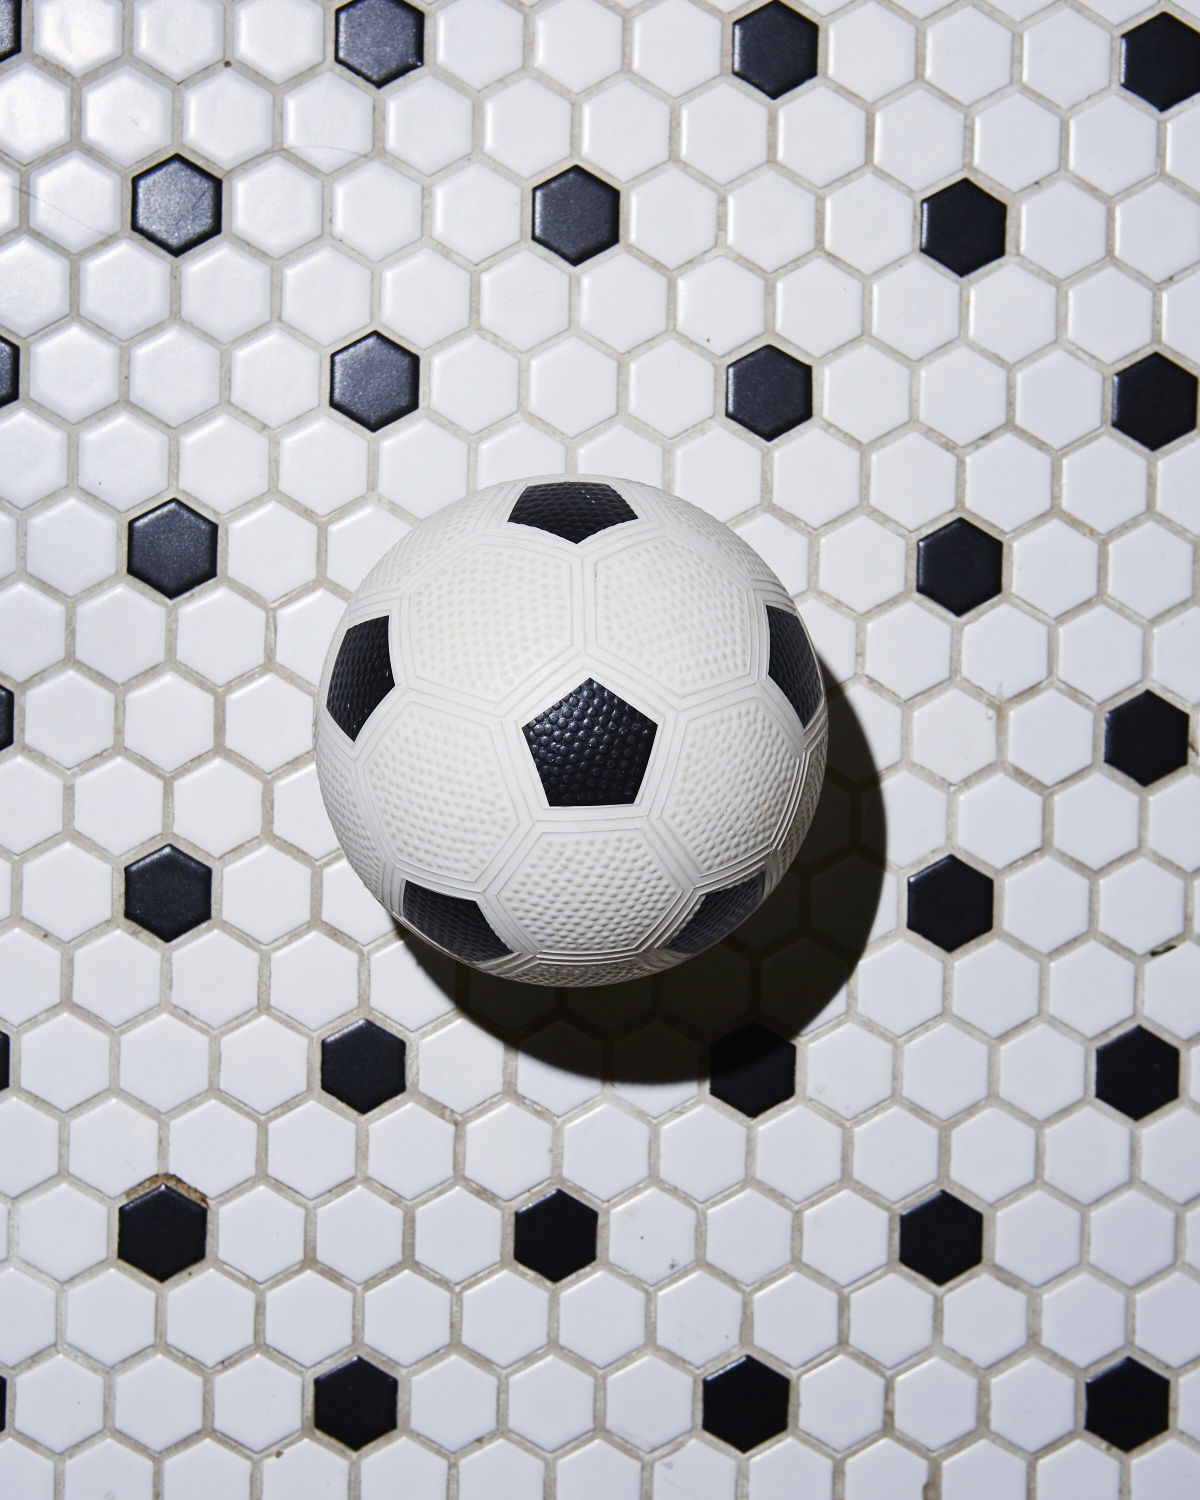 Ball on tile.